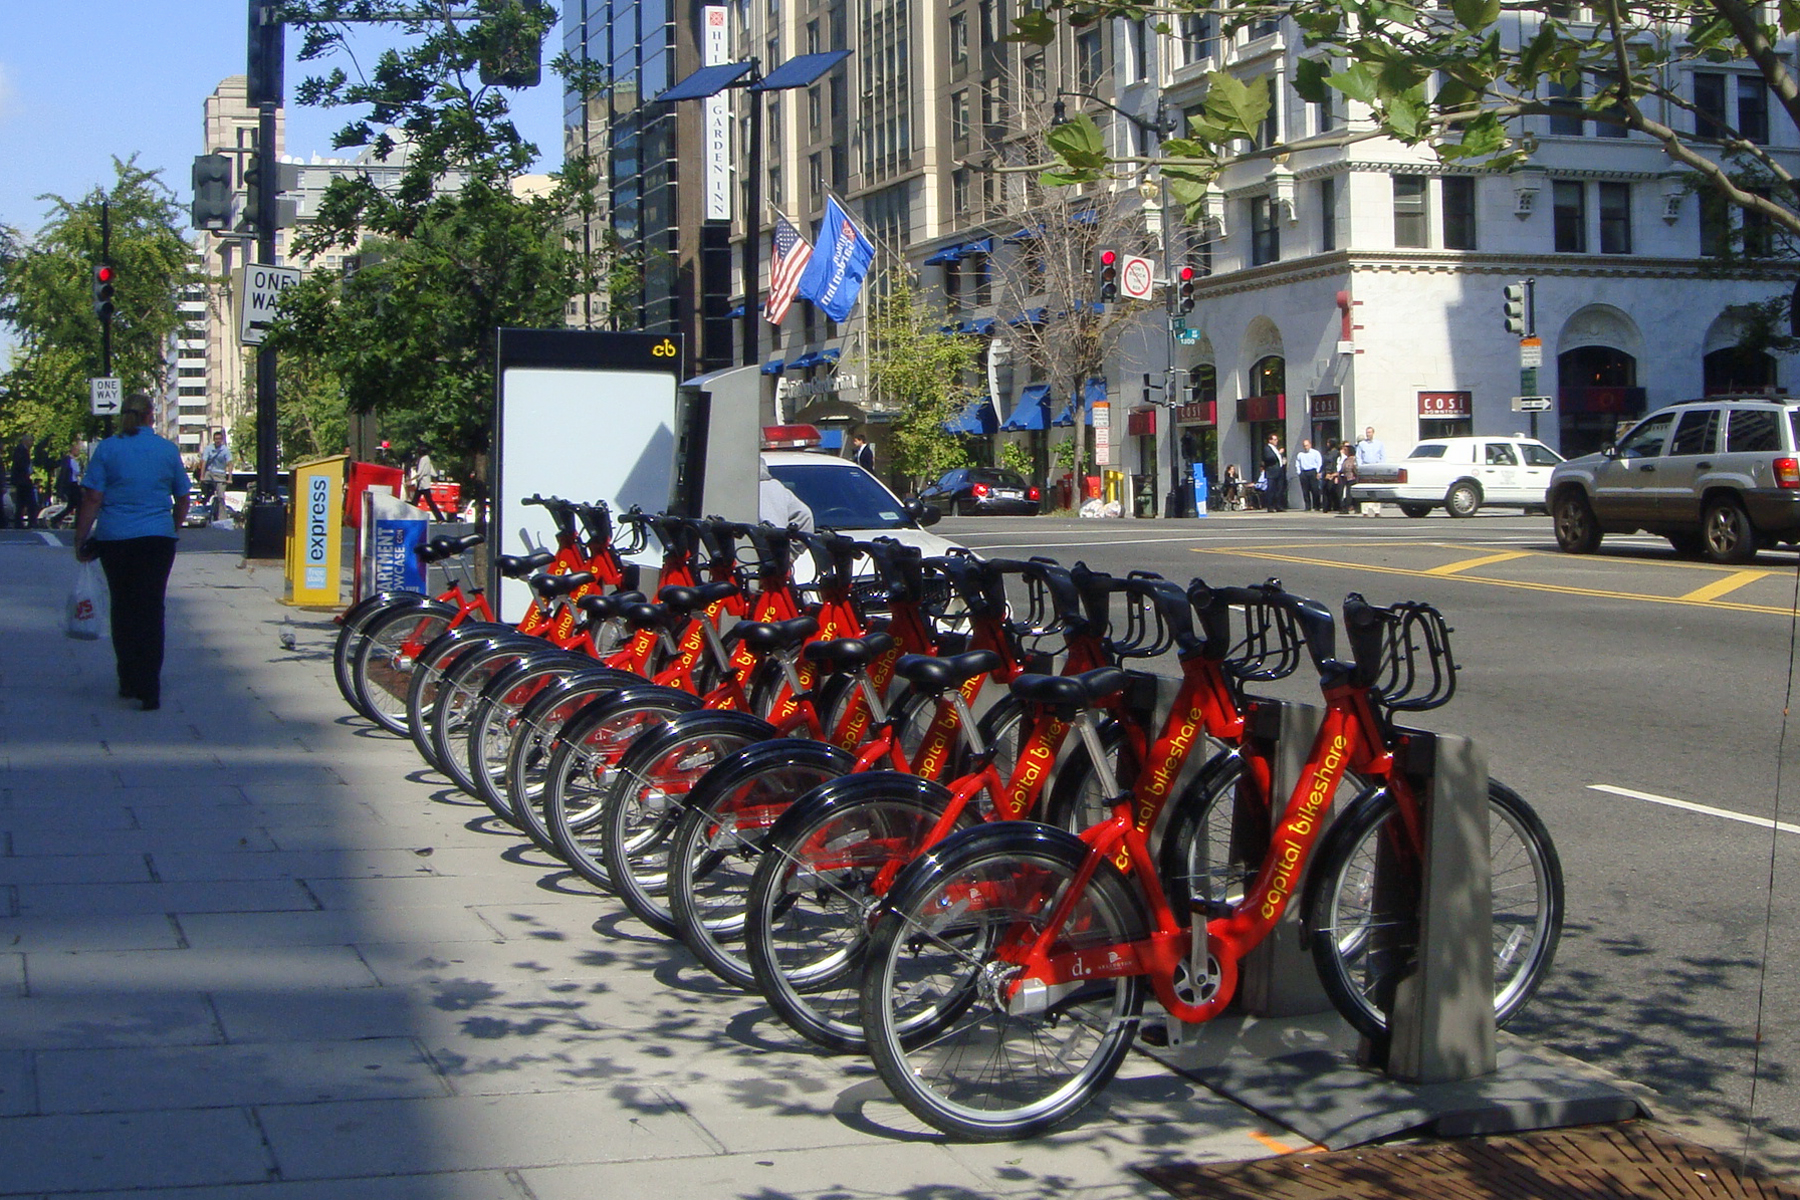 Capital Bikeshare rental station near McPherson Square Metro (WMATA) station, downtown Washington, D.C.